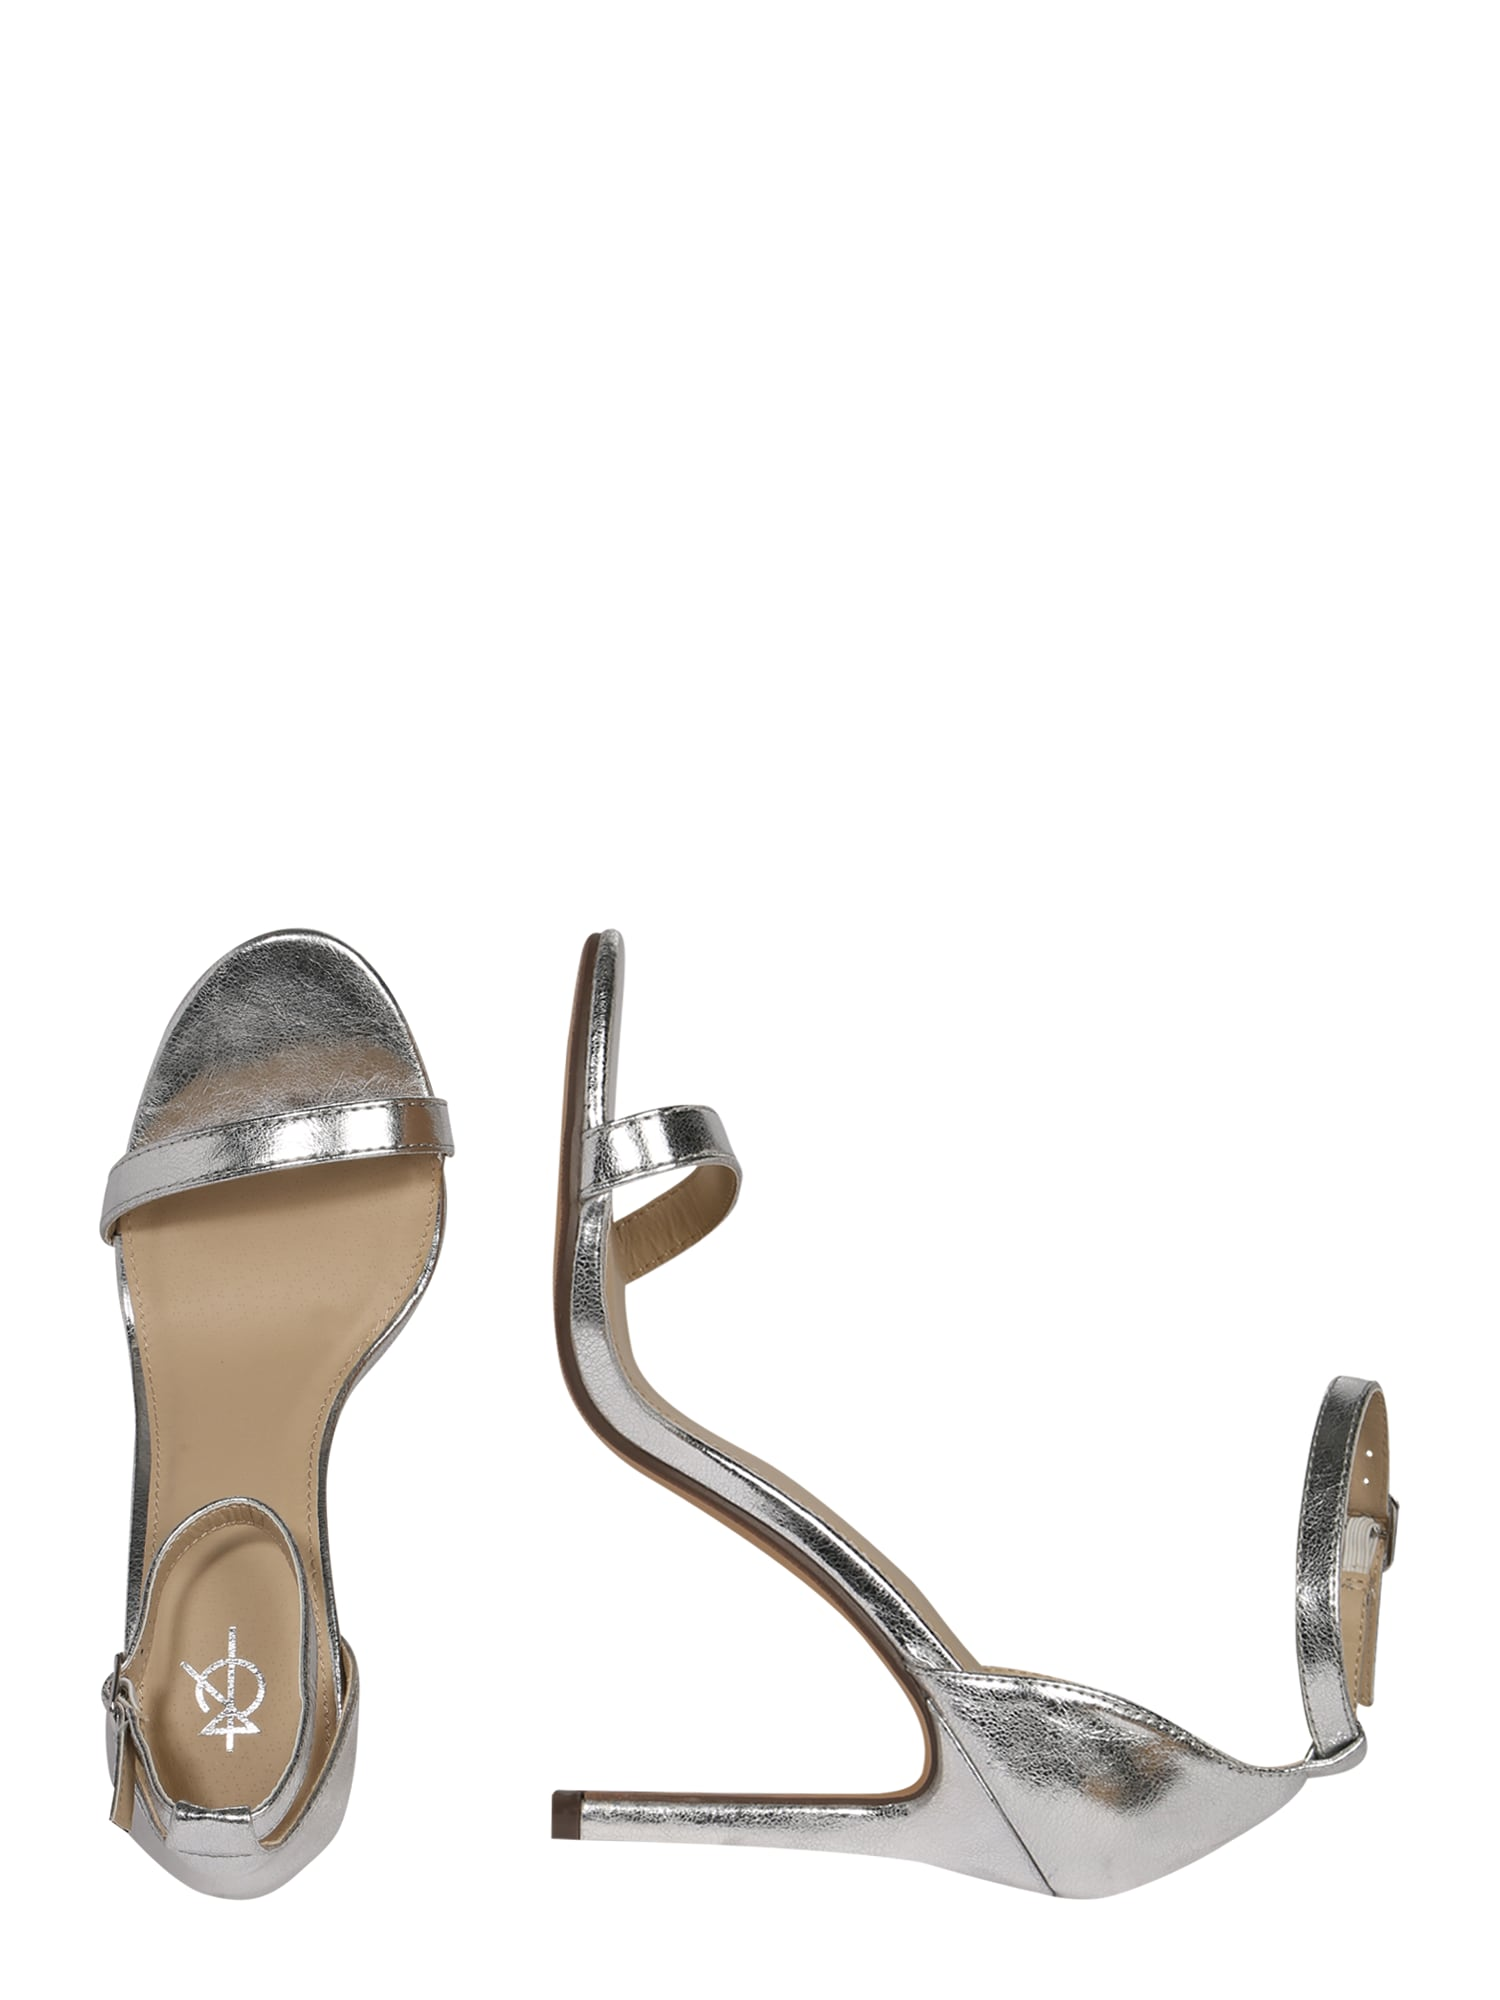 4th & Reckless Sandal 'JASMINE'  silver